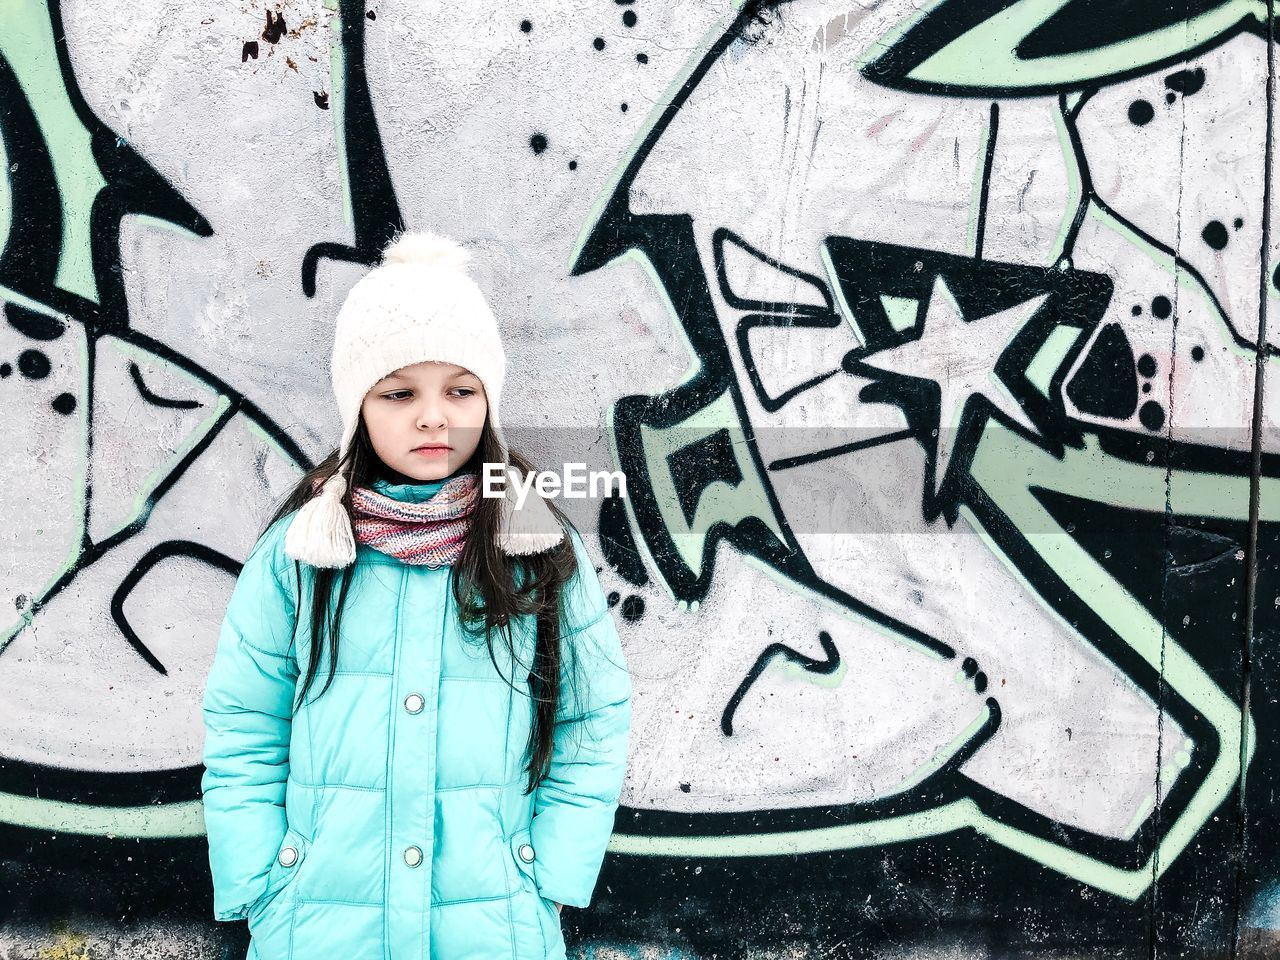 one person, graffiti, child, clothing, portrait, hat, standing, winter, childhood, warm clothing, looking at camera, women, females, day, knit hat, wall - building feature, waist up, city, outdoors